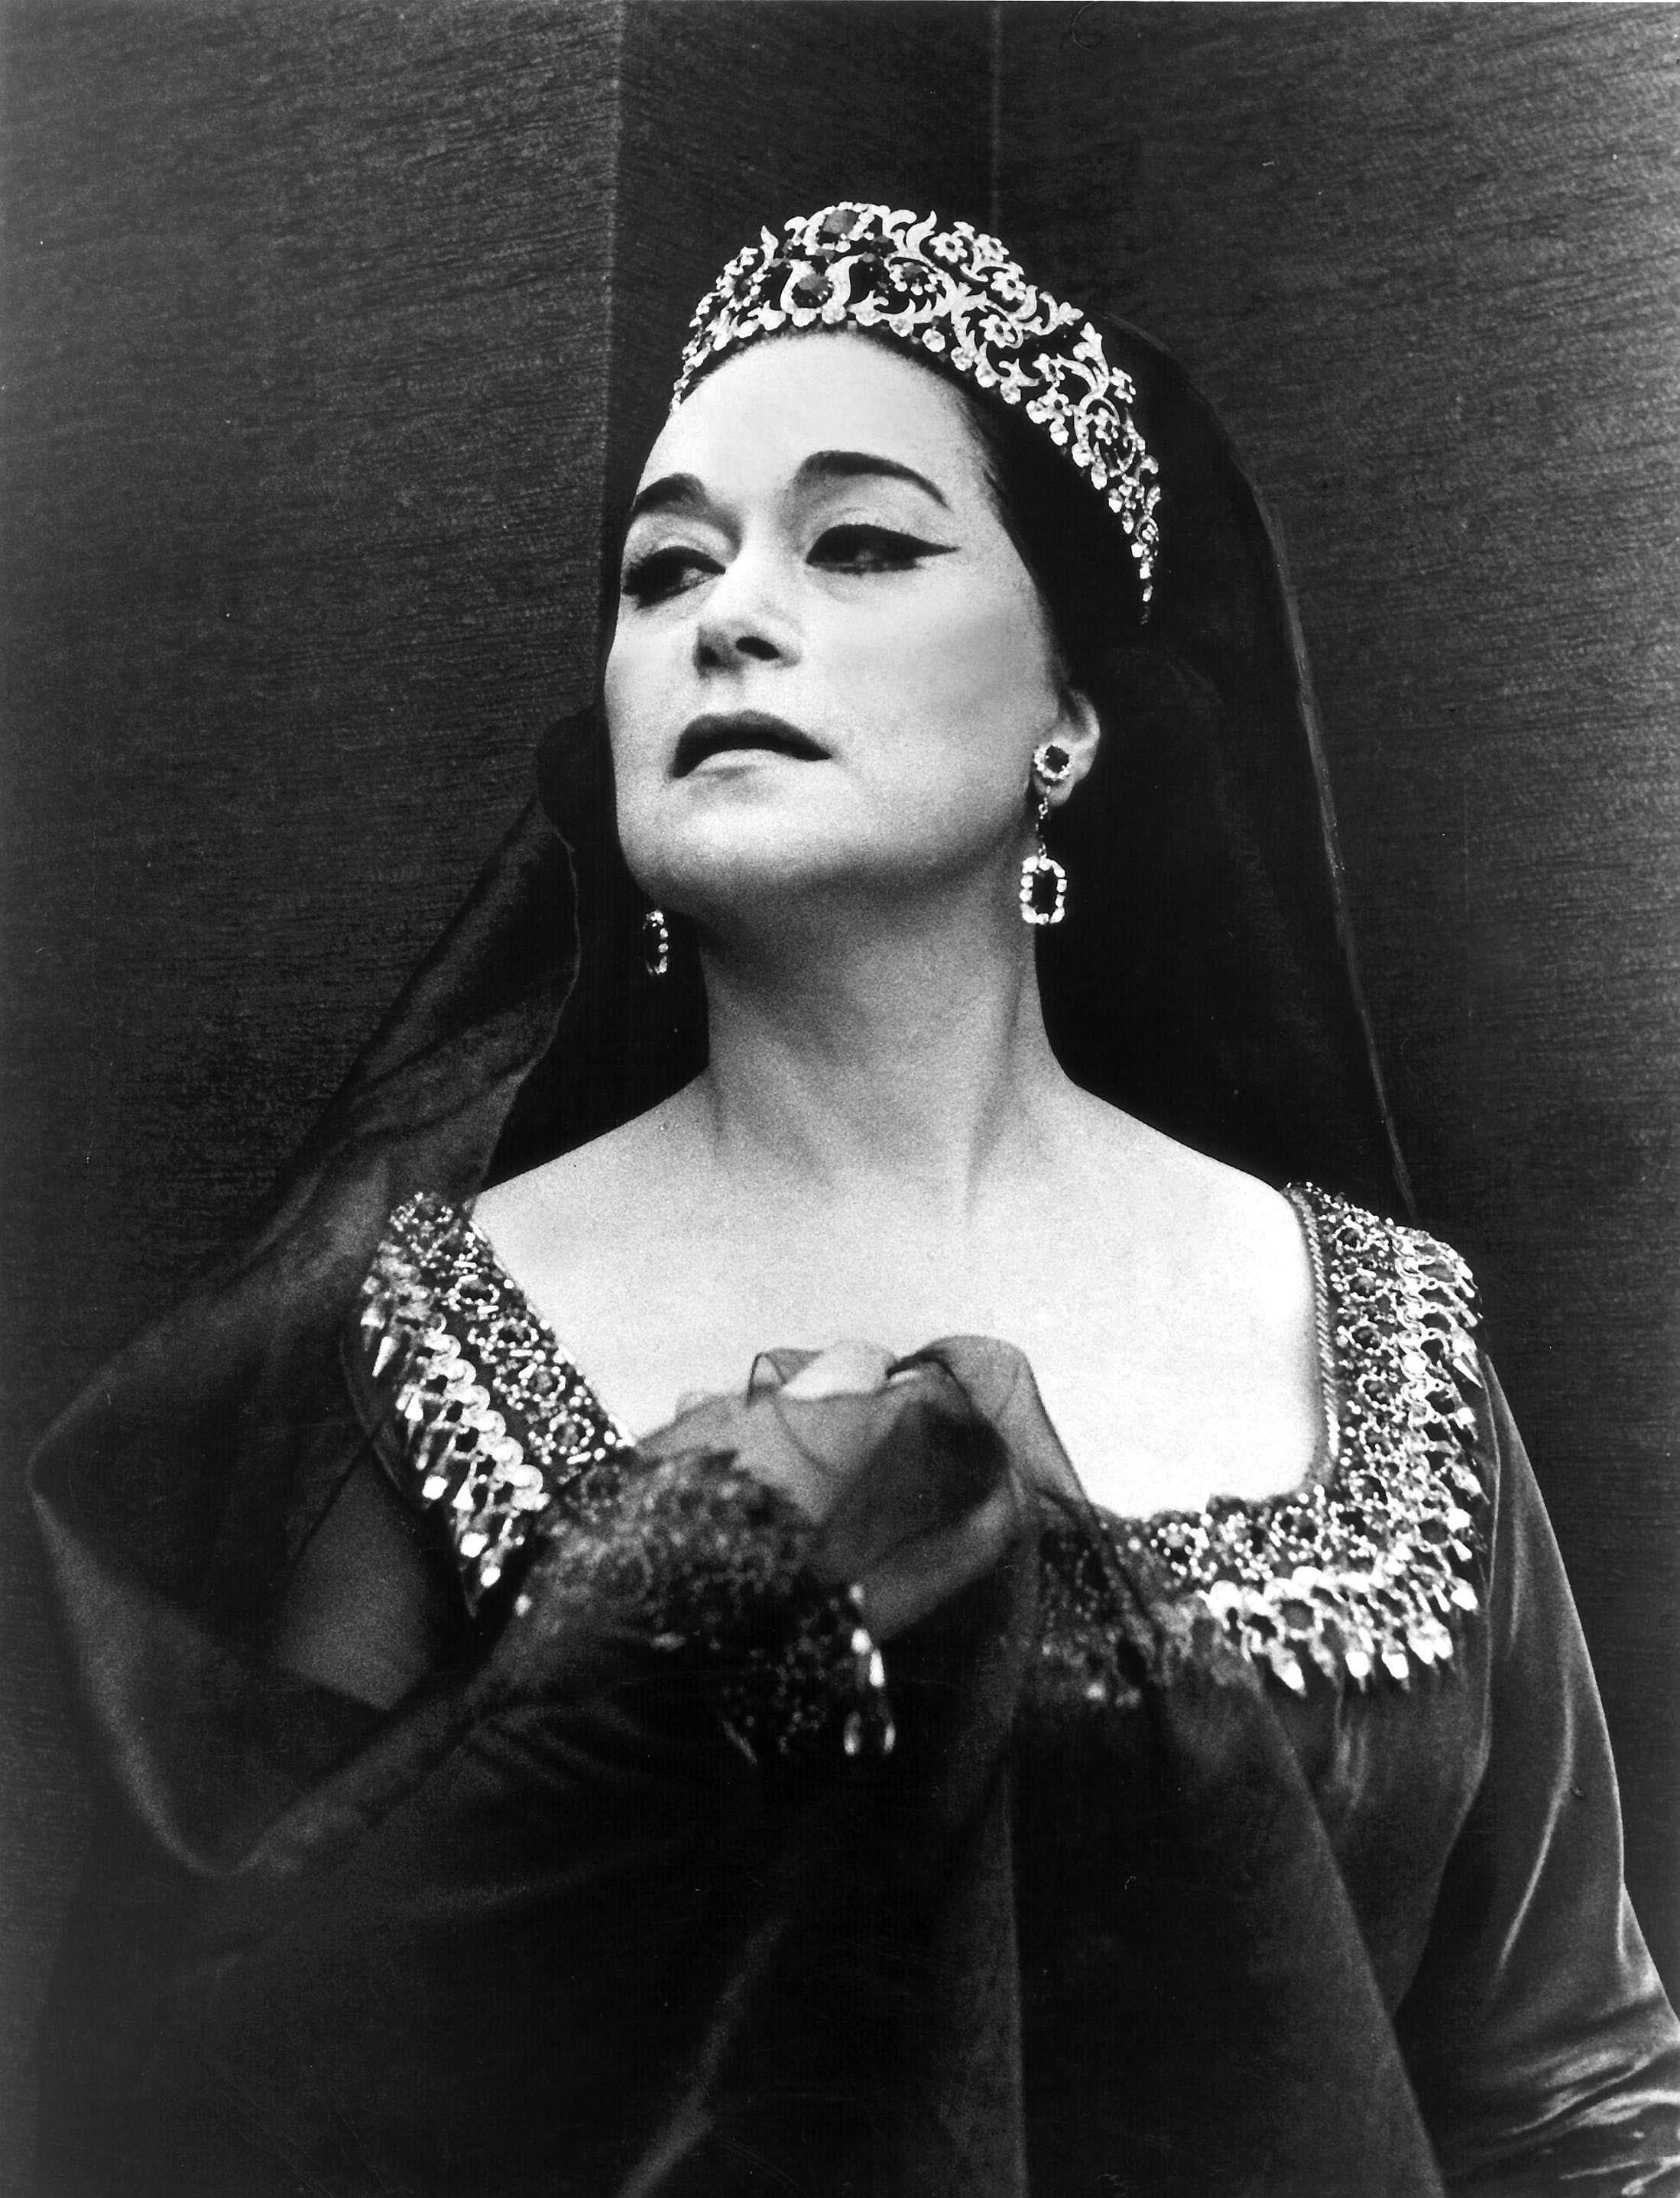 Turkish soprano Leyla Gencer performed at the famous La Scala opera house in Italy for the first time in 1957.